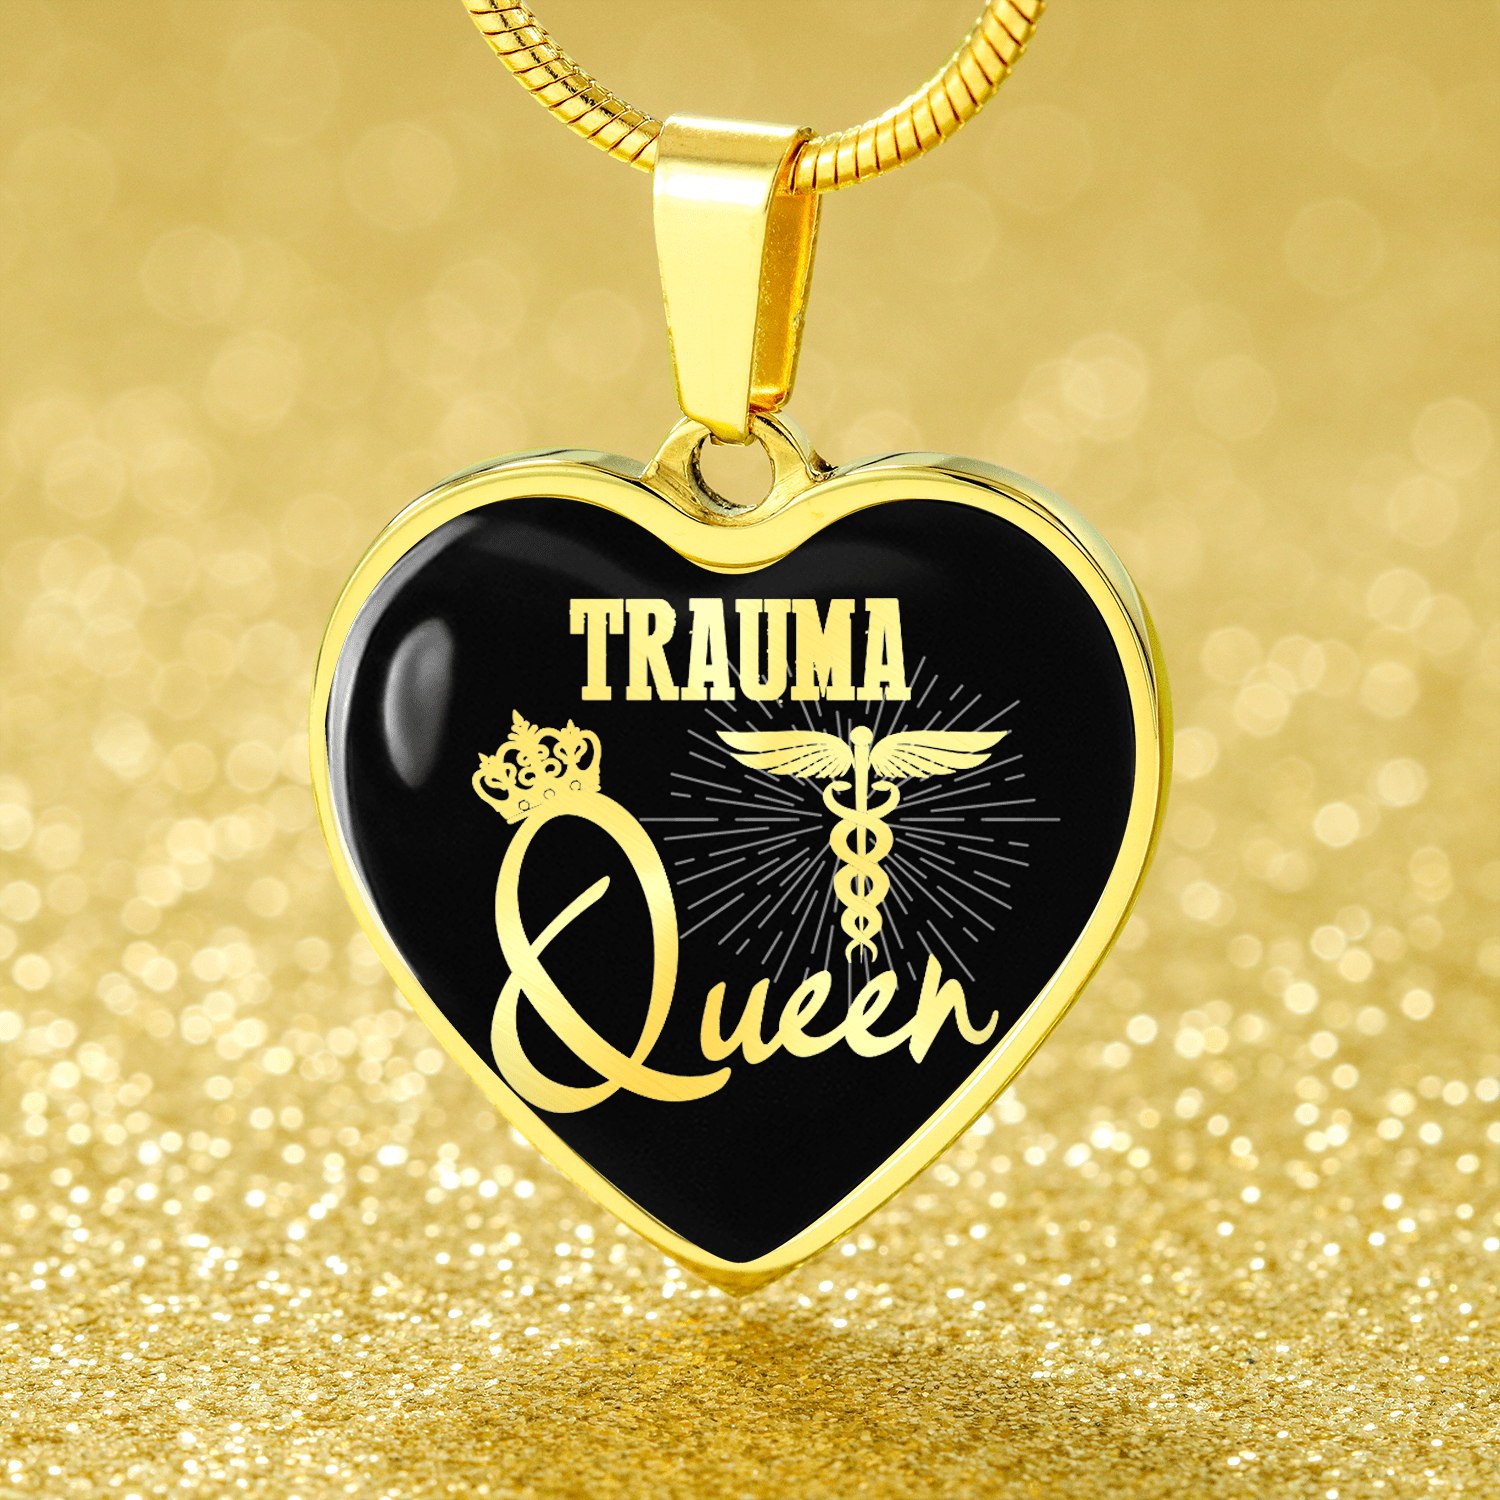 "Trauma Queen Paramedic Nurse Necklace Stainless Steel or 18k Gold Finish Heart Pendant 18""-22"" Express Your Love Gifts"